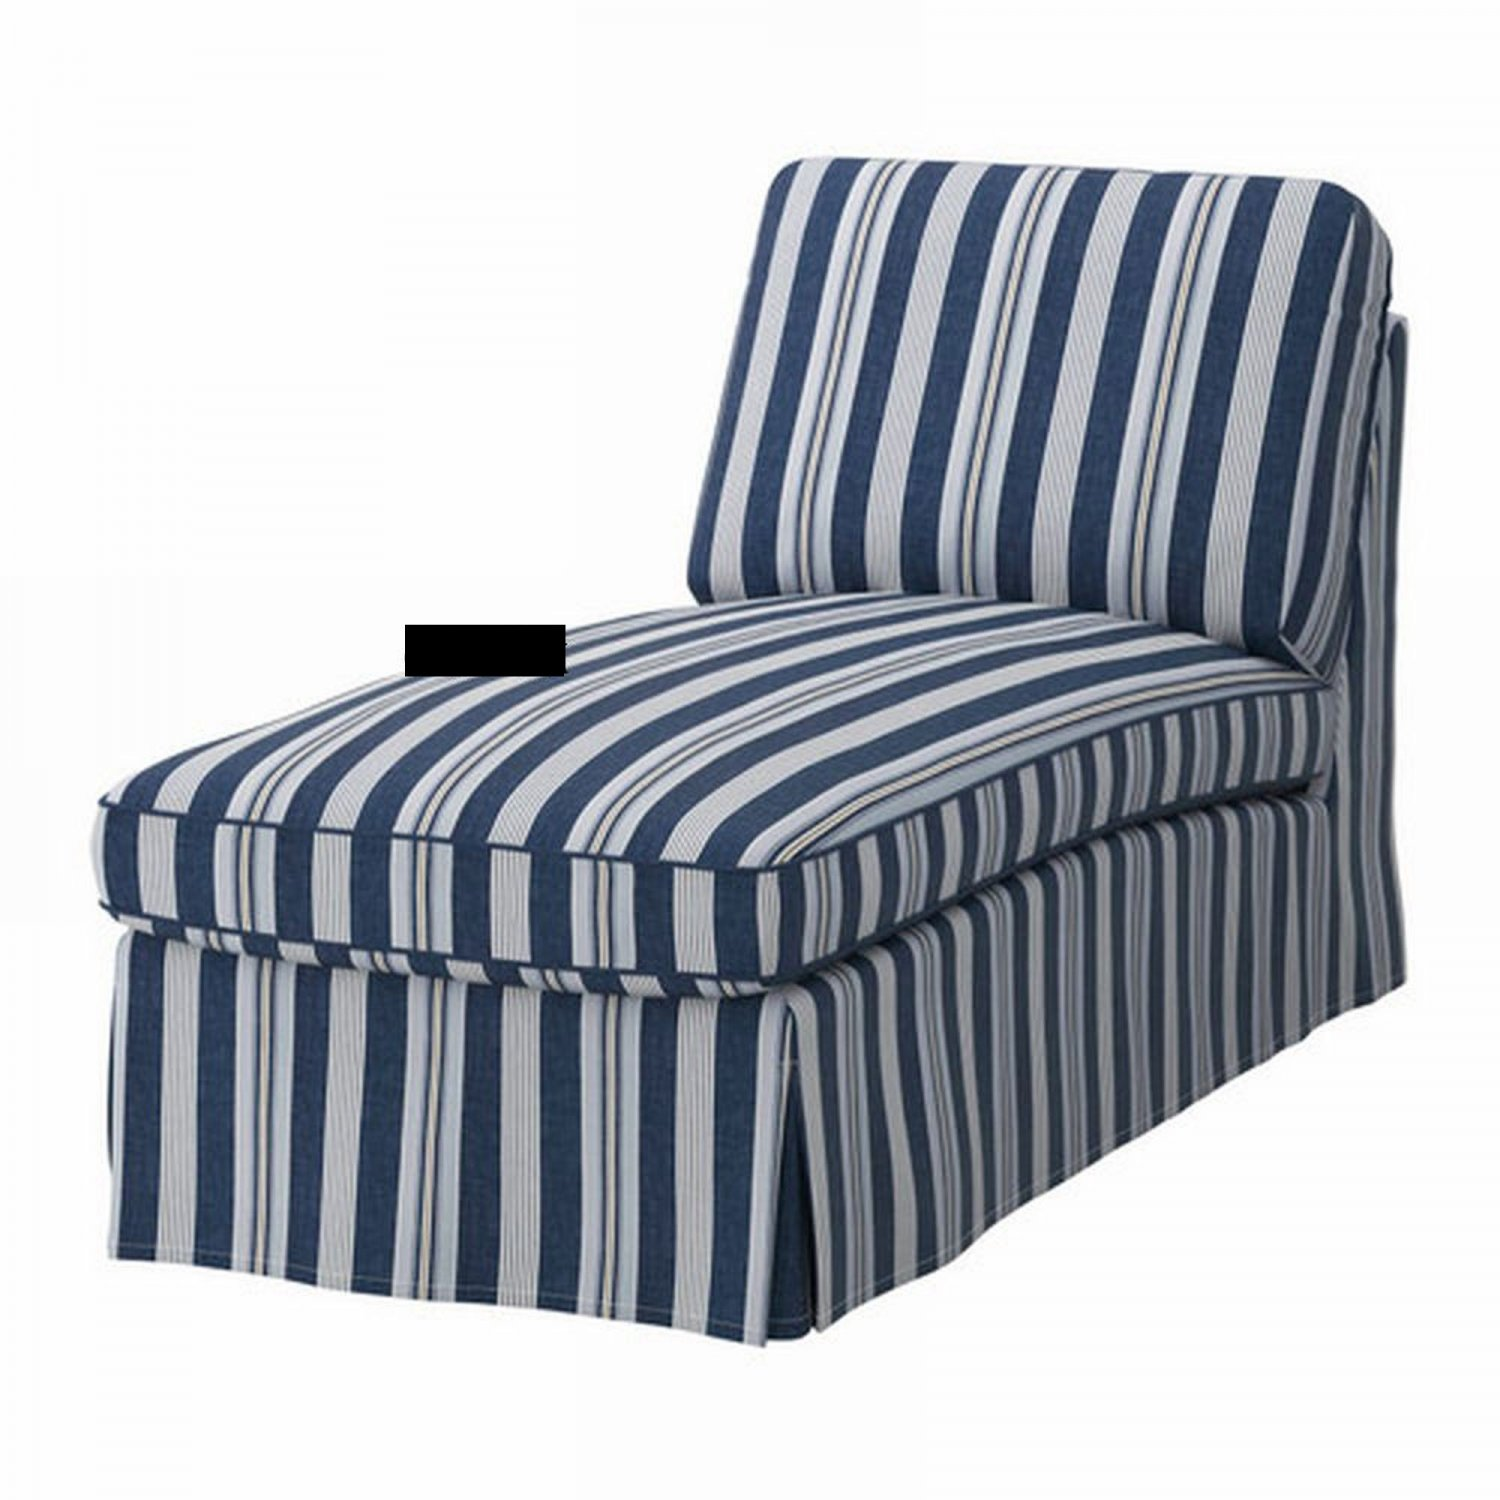 blue striped sofa uk clean leather at home ikea ektorp free standing chaise cover slipcover abyn